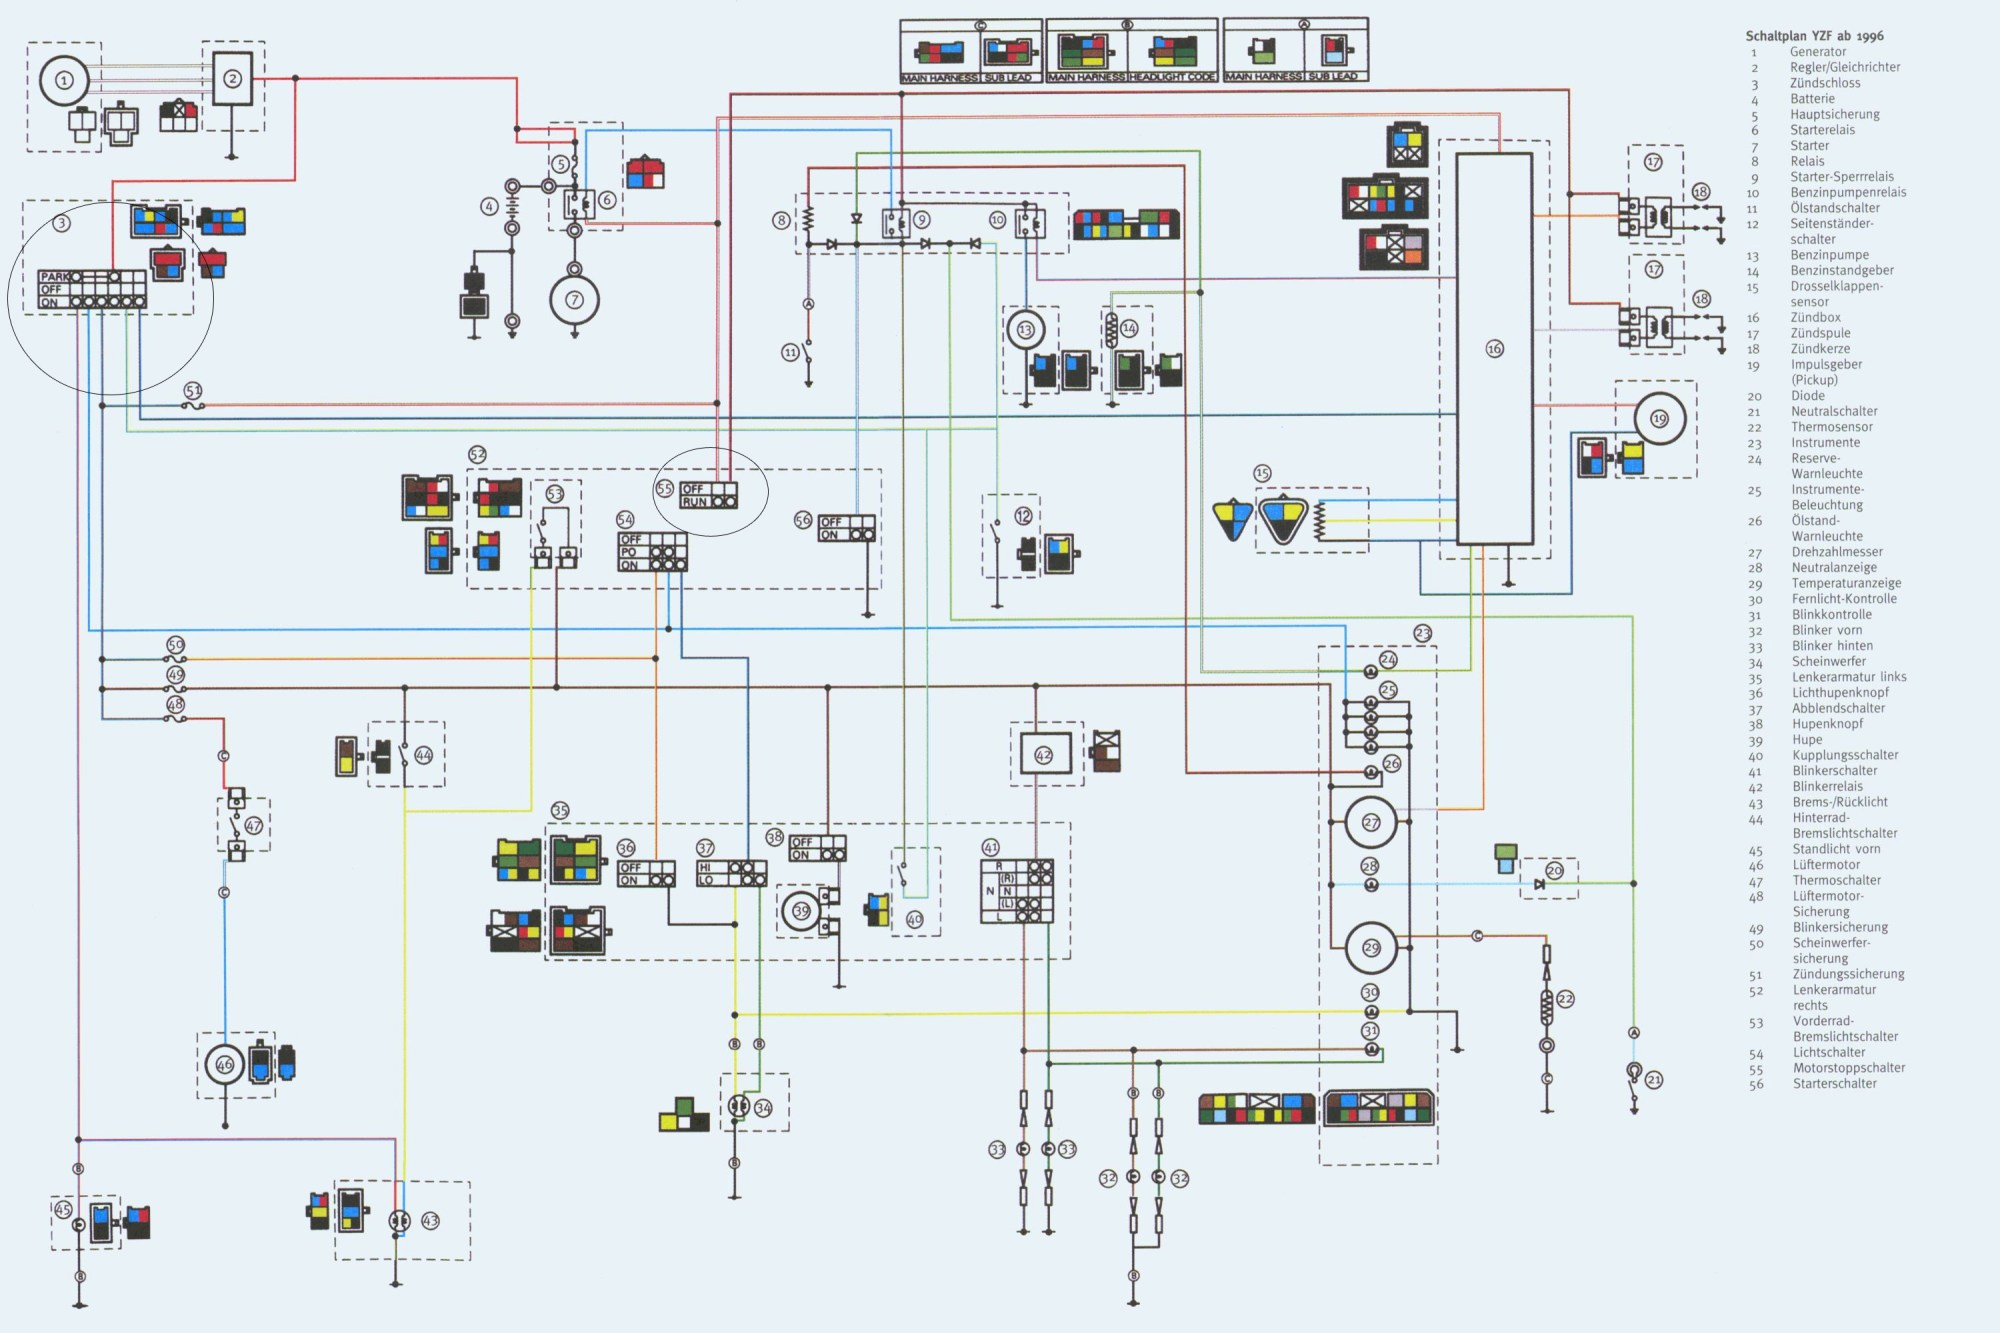 hight resolution of wiring diagram of yamaha crypton wire diagram yamaha crypton z electrical diagram yamaha crypton z wiring diagram